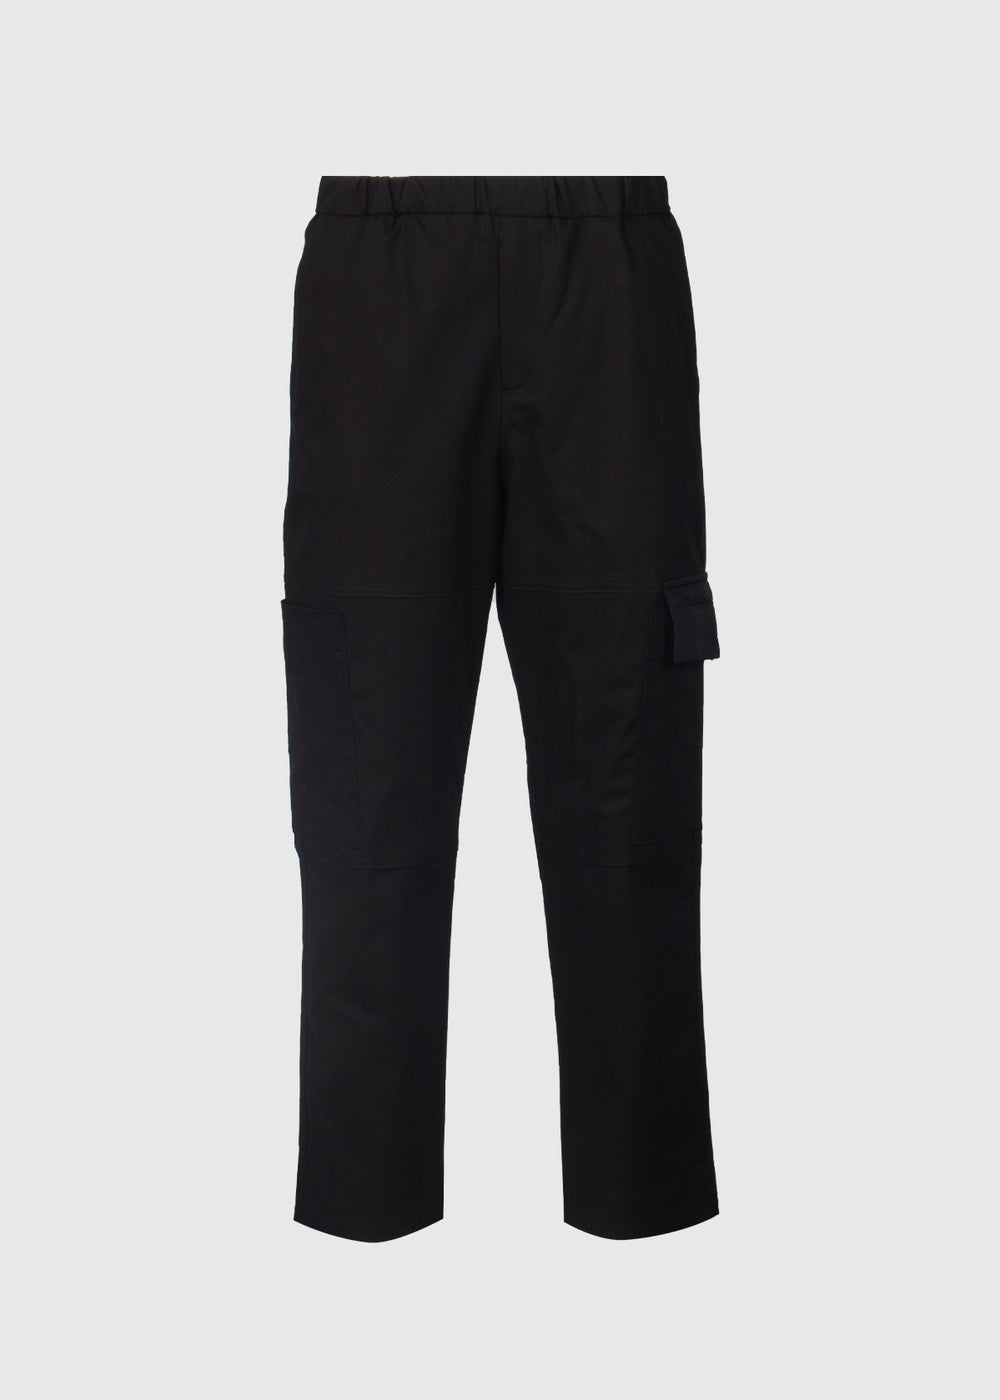 tapered-cargo-pant-f965pa2161ra-99-blk-1